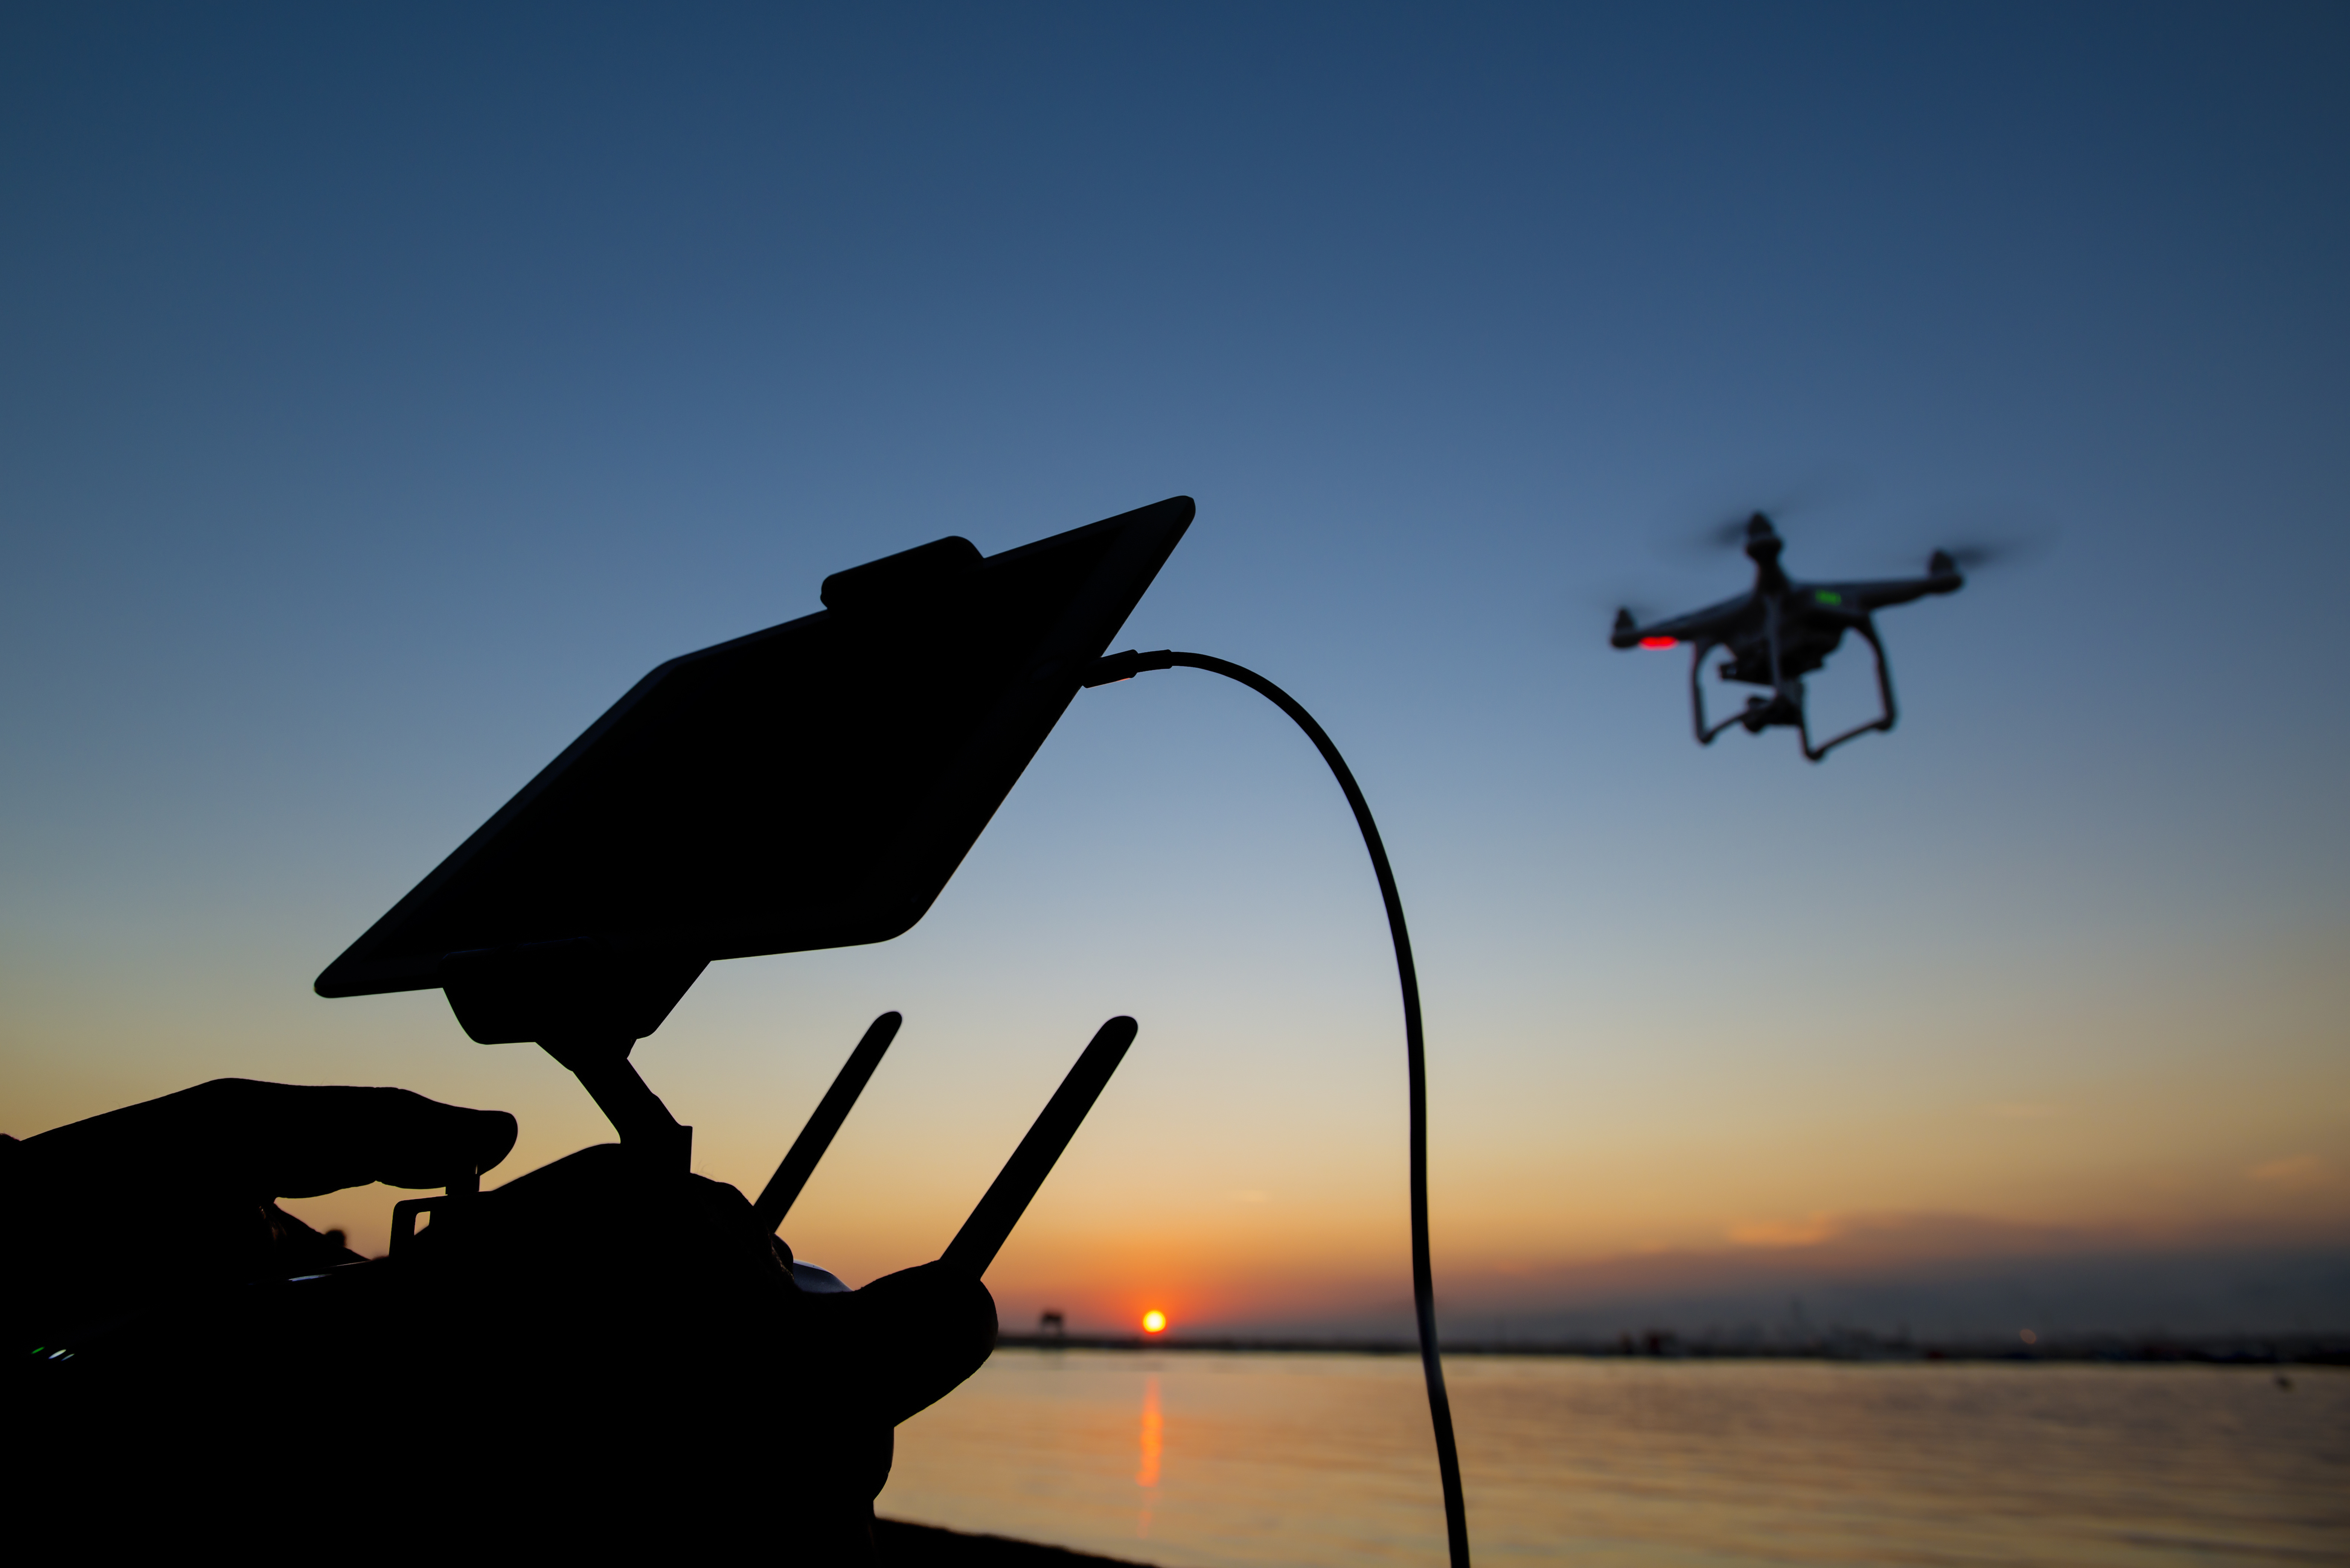 silhouette of airborne drone and pilot's controller against setting sun over ocean.